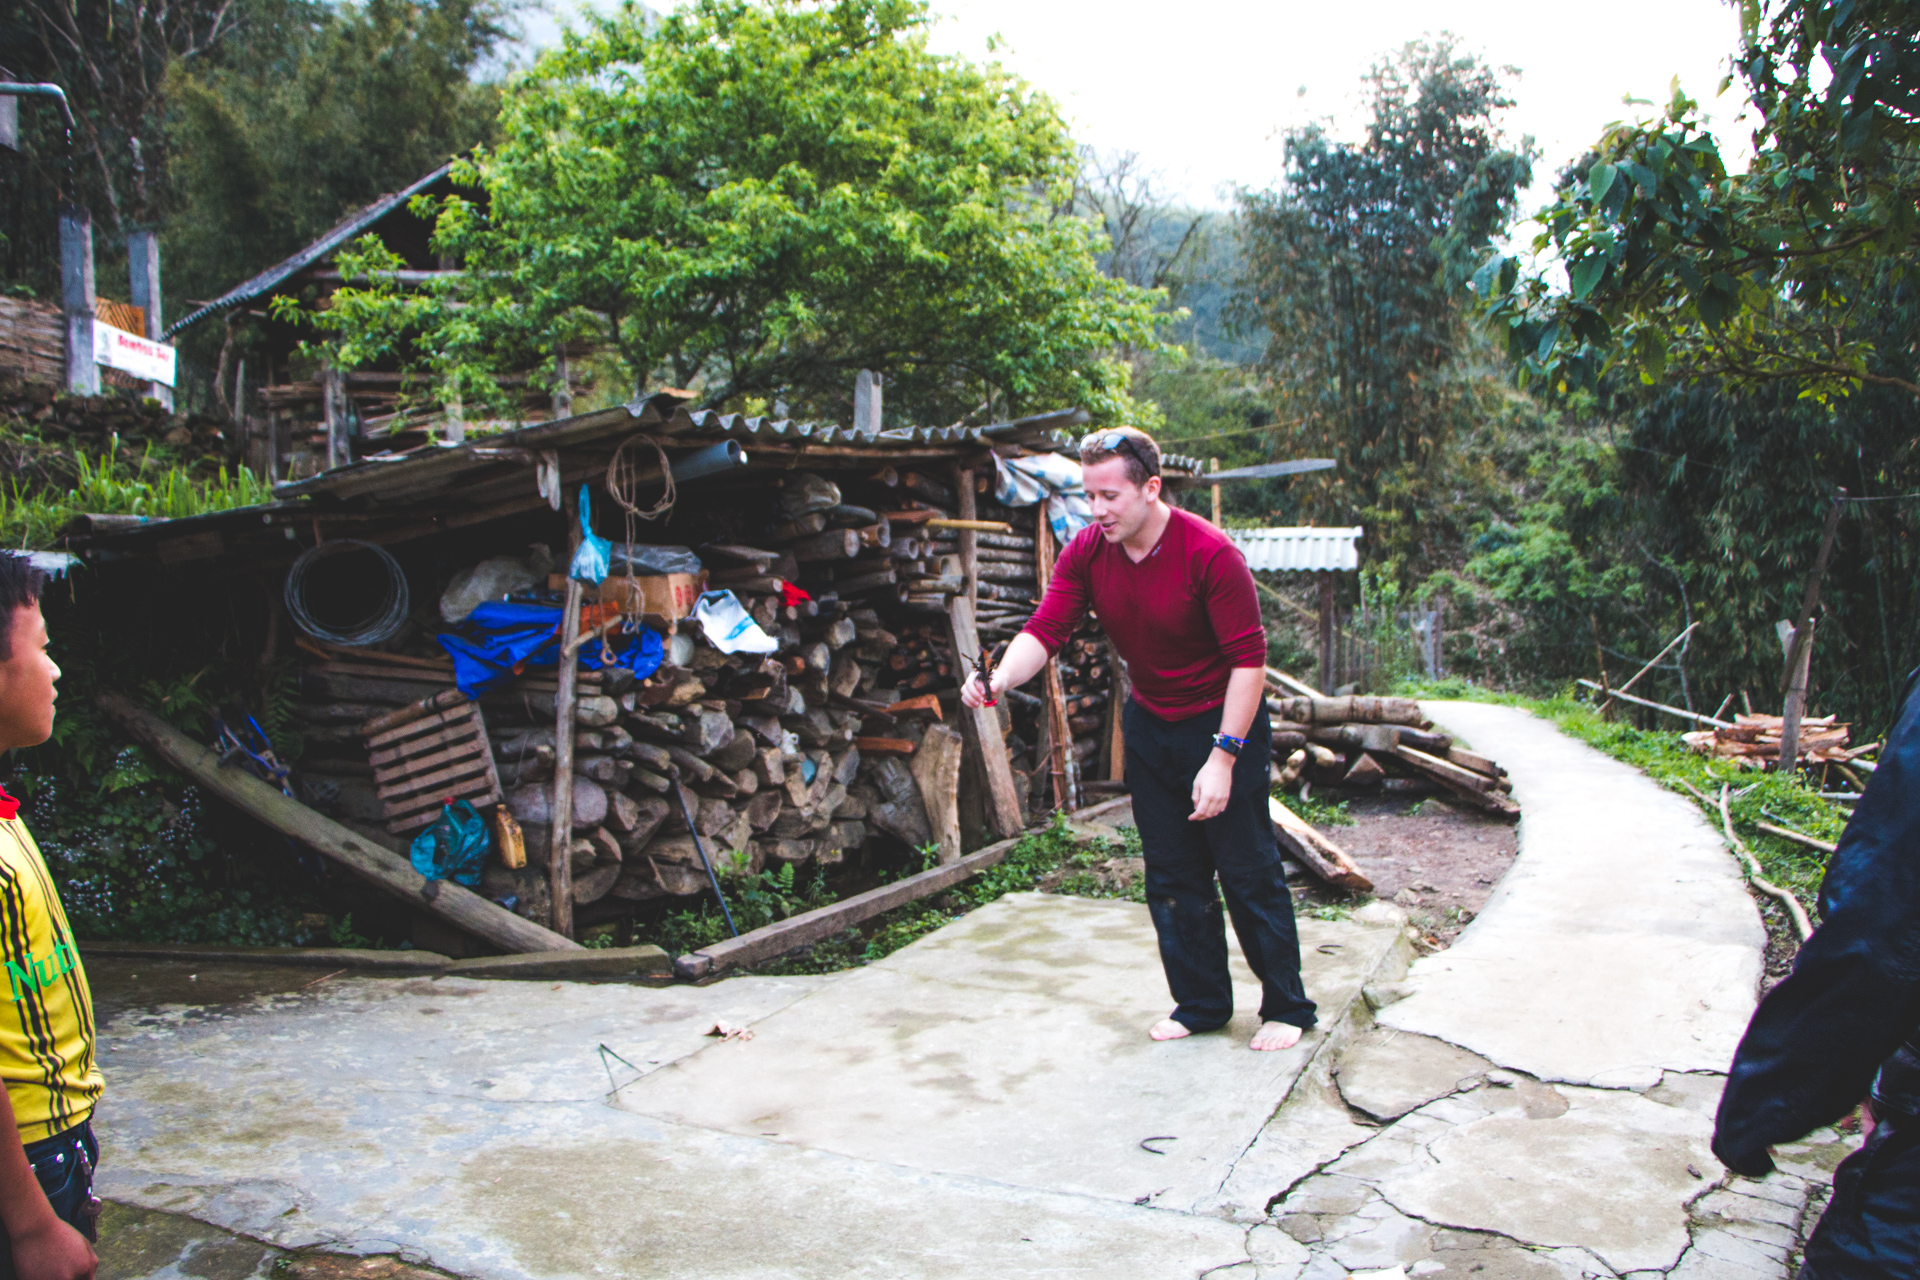 Da Cau game in Sapa, Vietnam